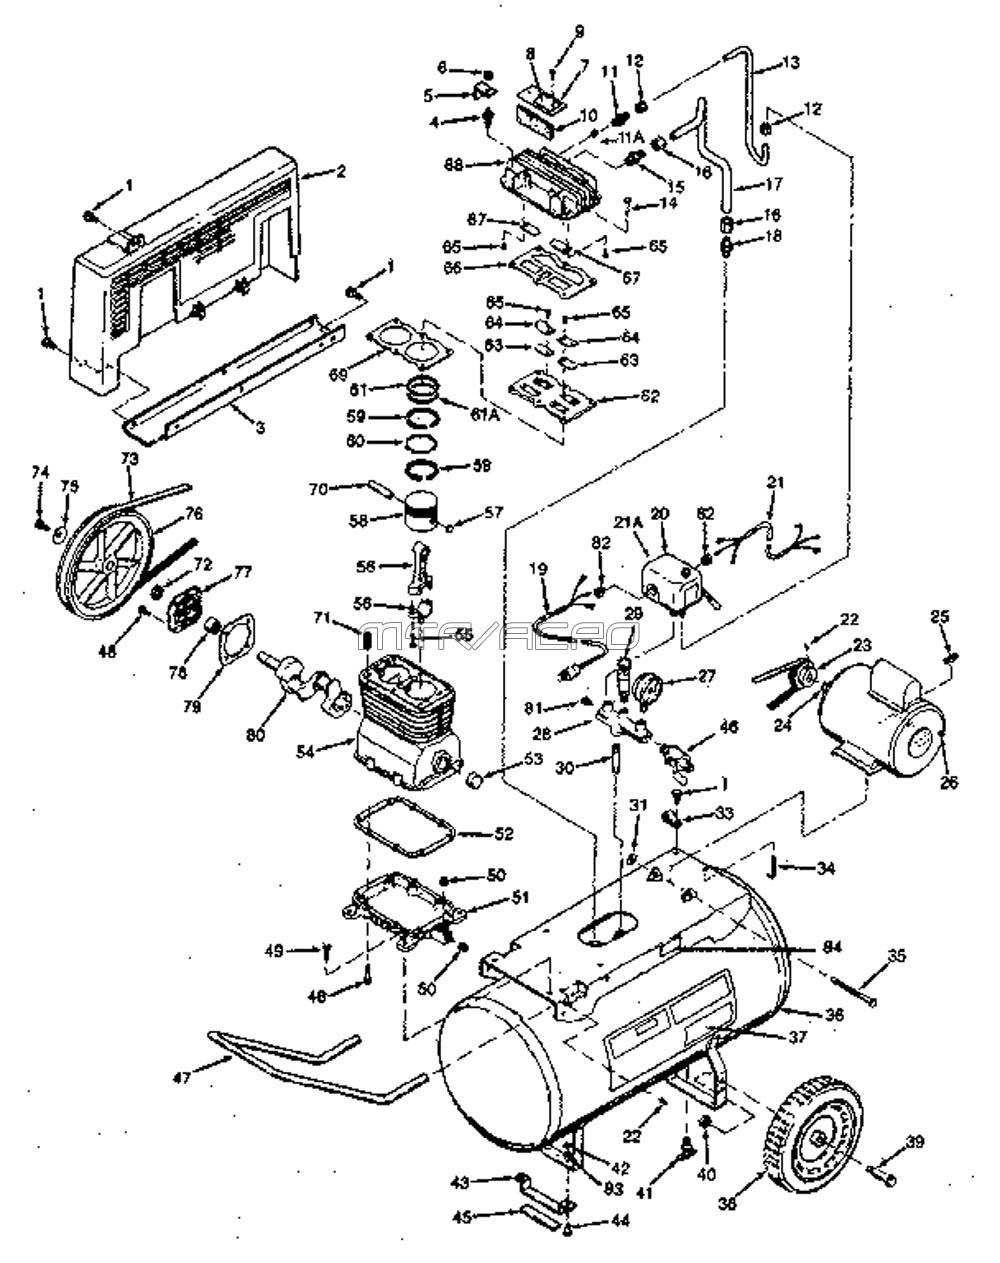 Wiring Diagram For Craftsman Air Compressor